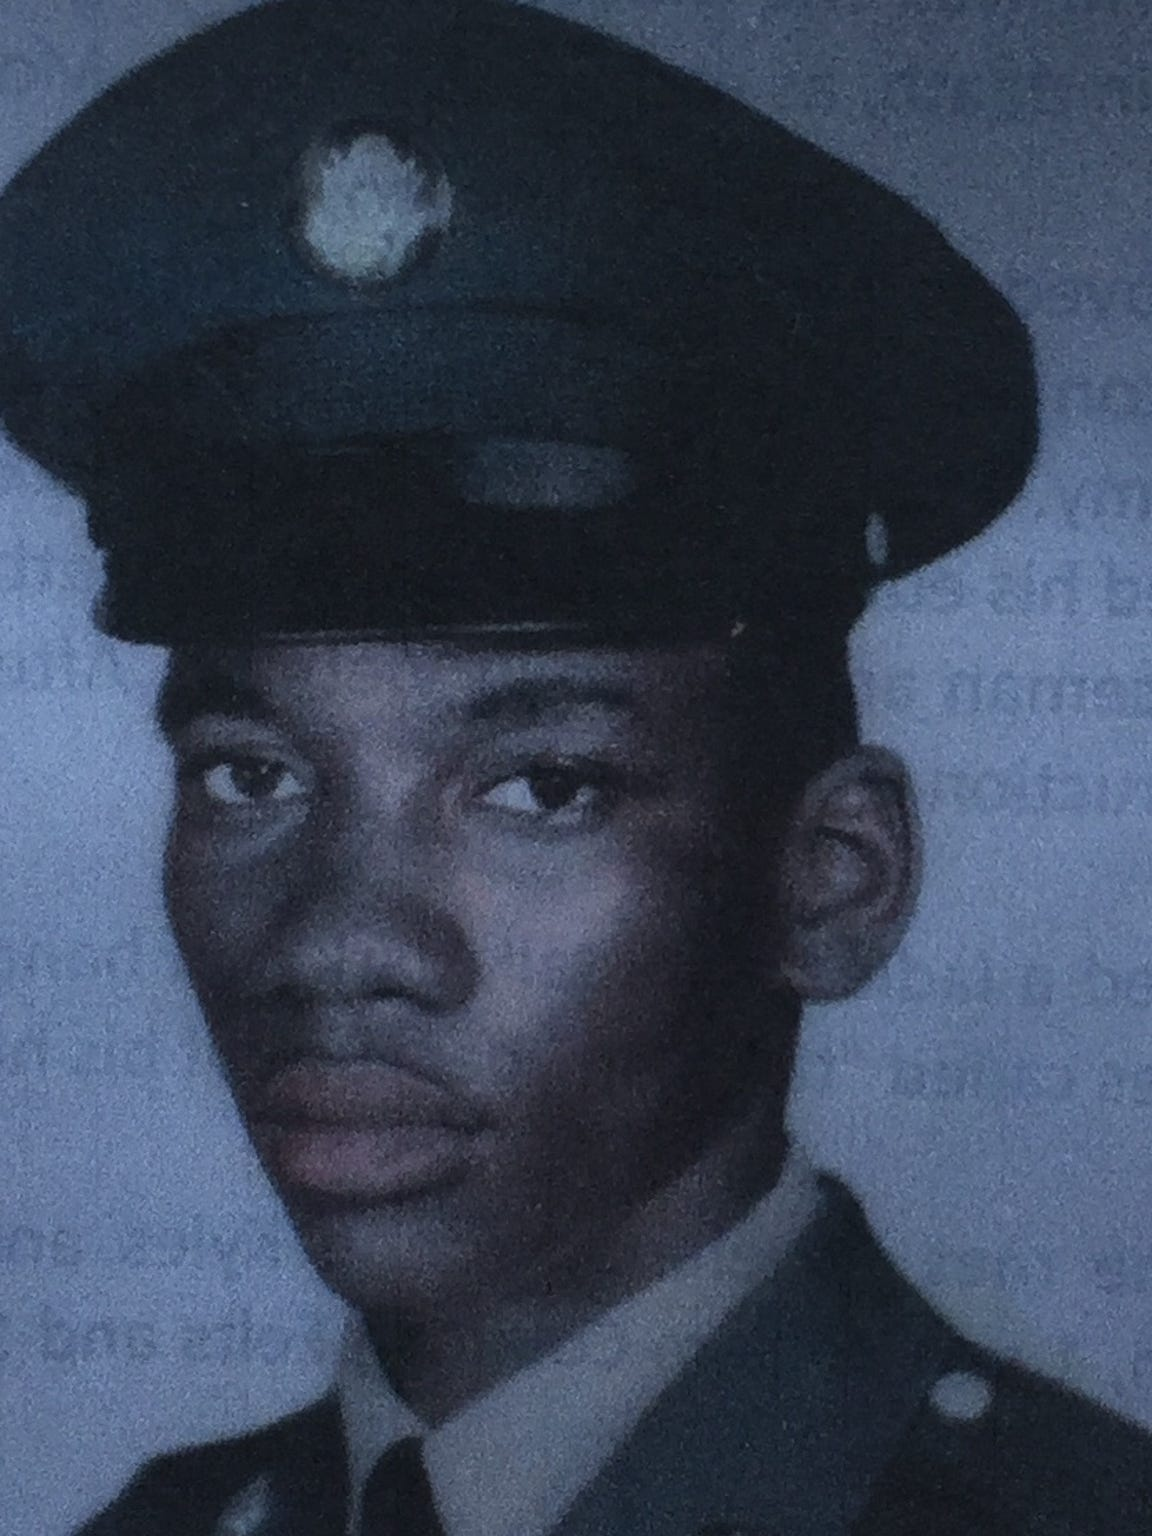 Coleman Felts served in the U.S. Army as a young man. This photo was on the cover of his funeral program. Felts wandered from the Golden Glades Nursing and Rehabilitation Center in Miami in December 2015 and drowned in a lake.